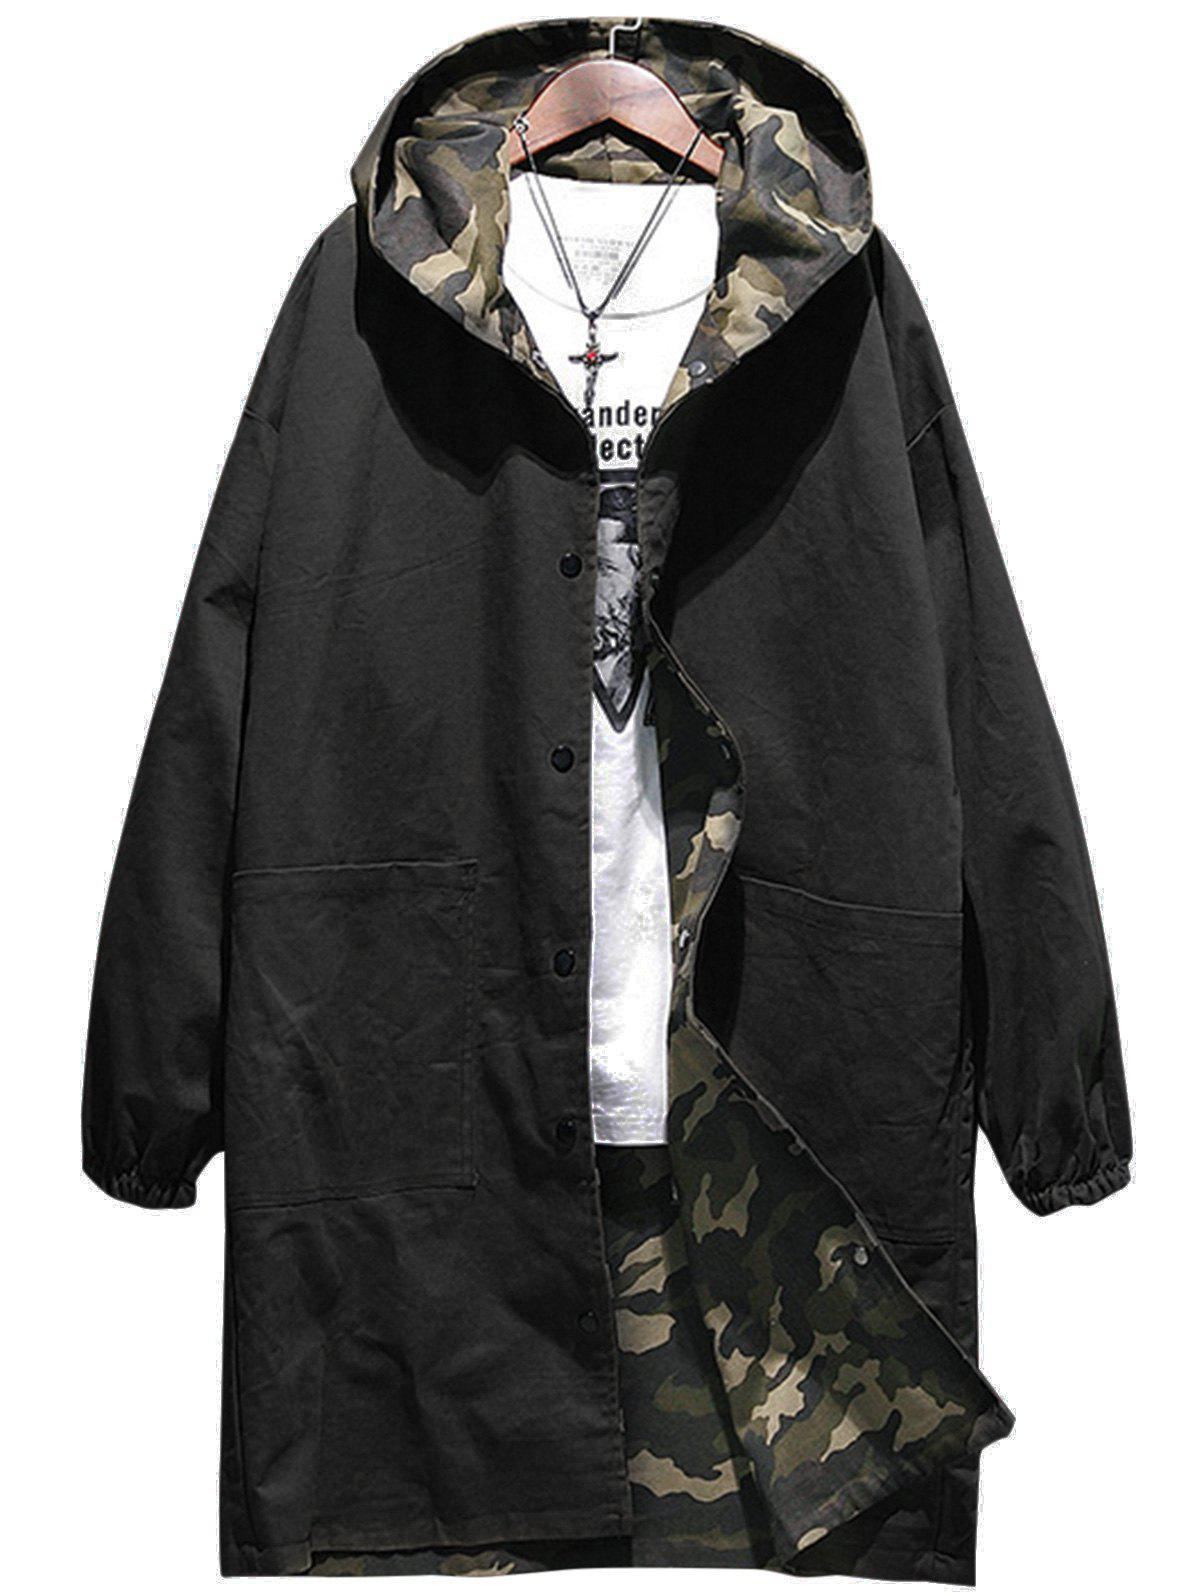 Shop Reversible Style Camouflage Hooded Pockets Coat